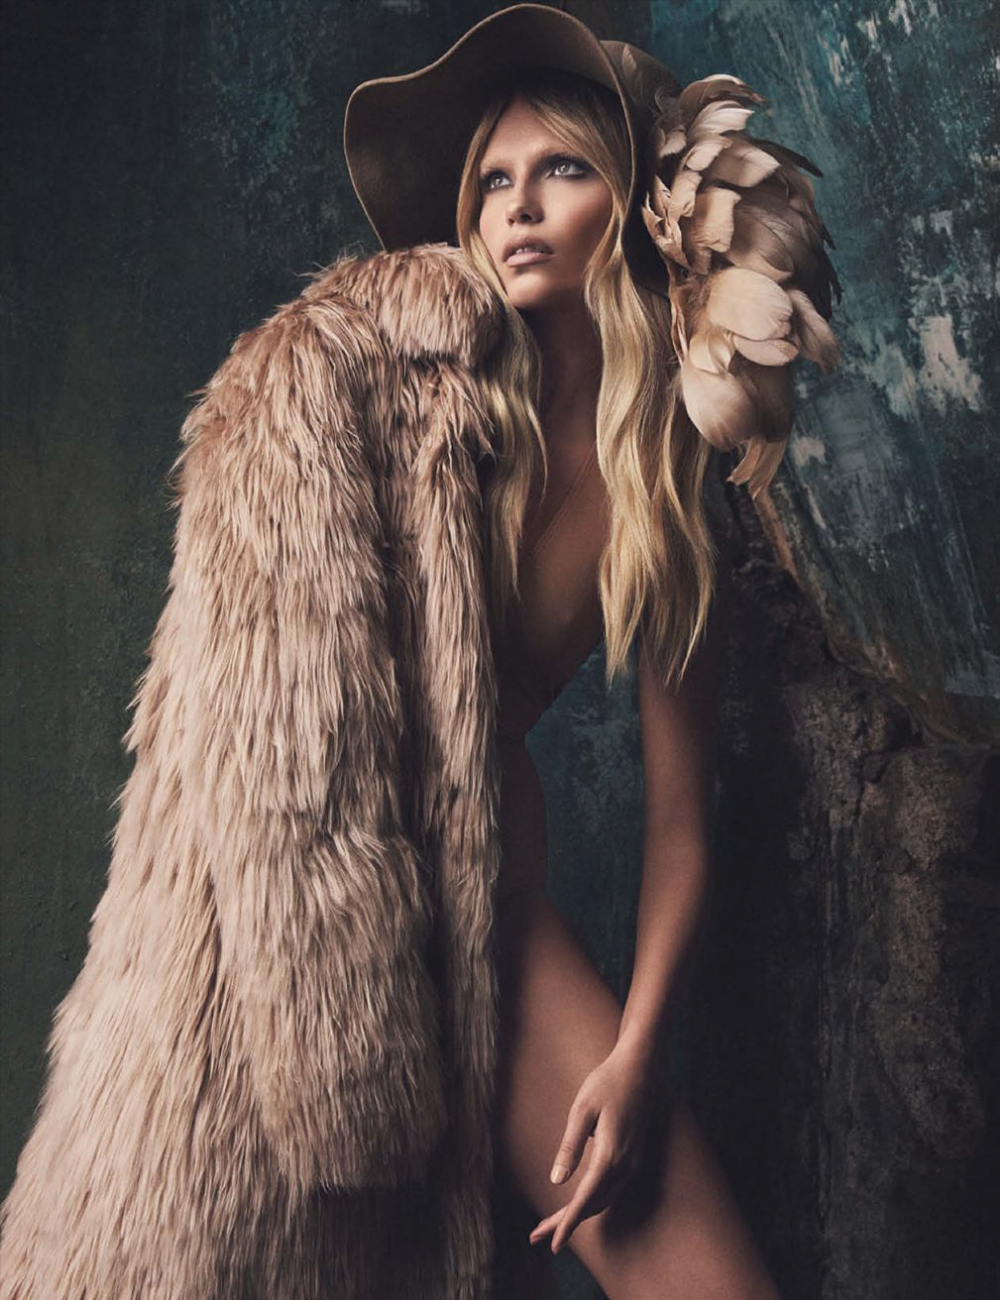 Natasha-Poly-by-Luici-and-Iango-for-Vogue-Germany-October-2014-5.jpg